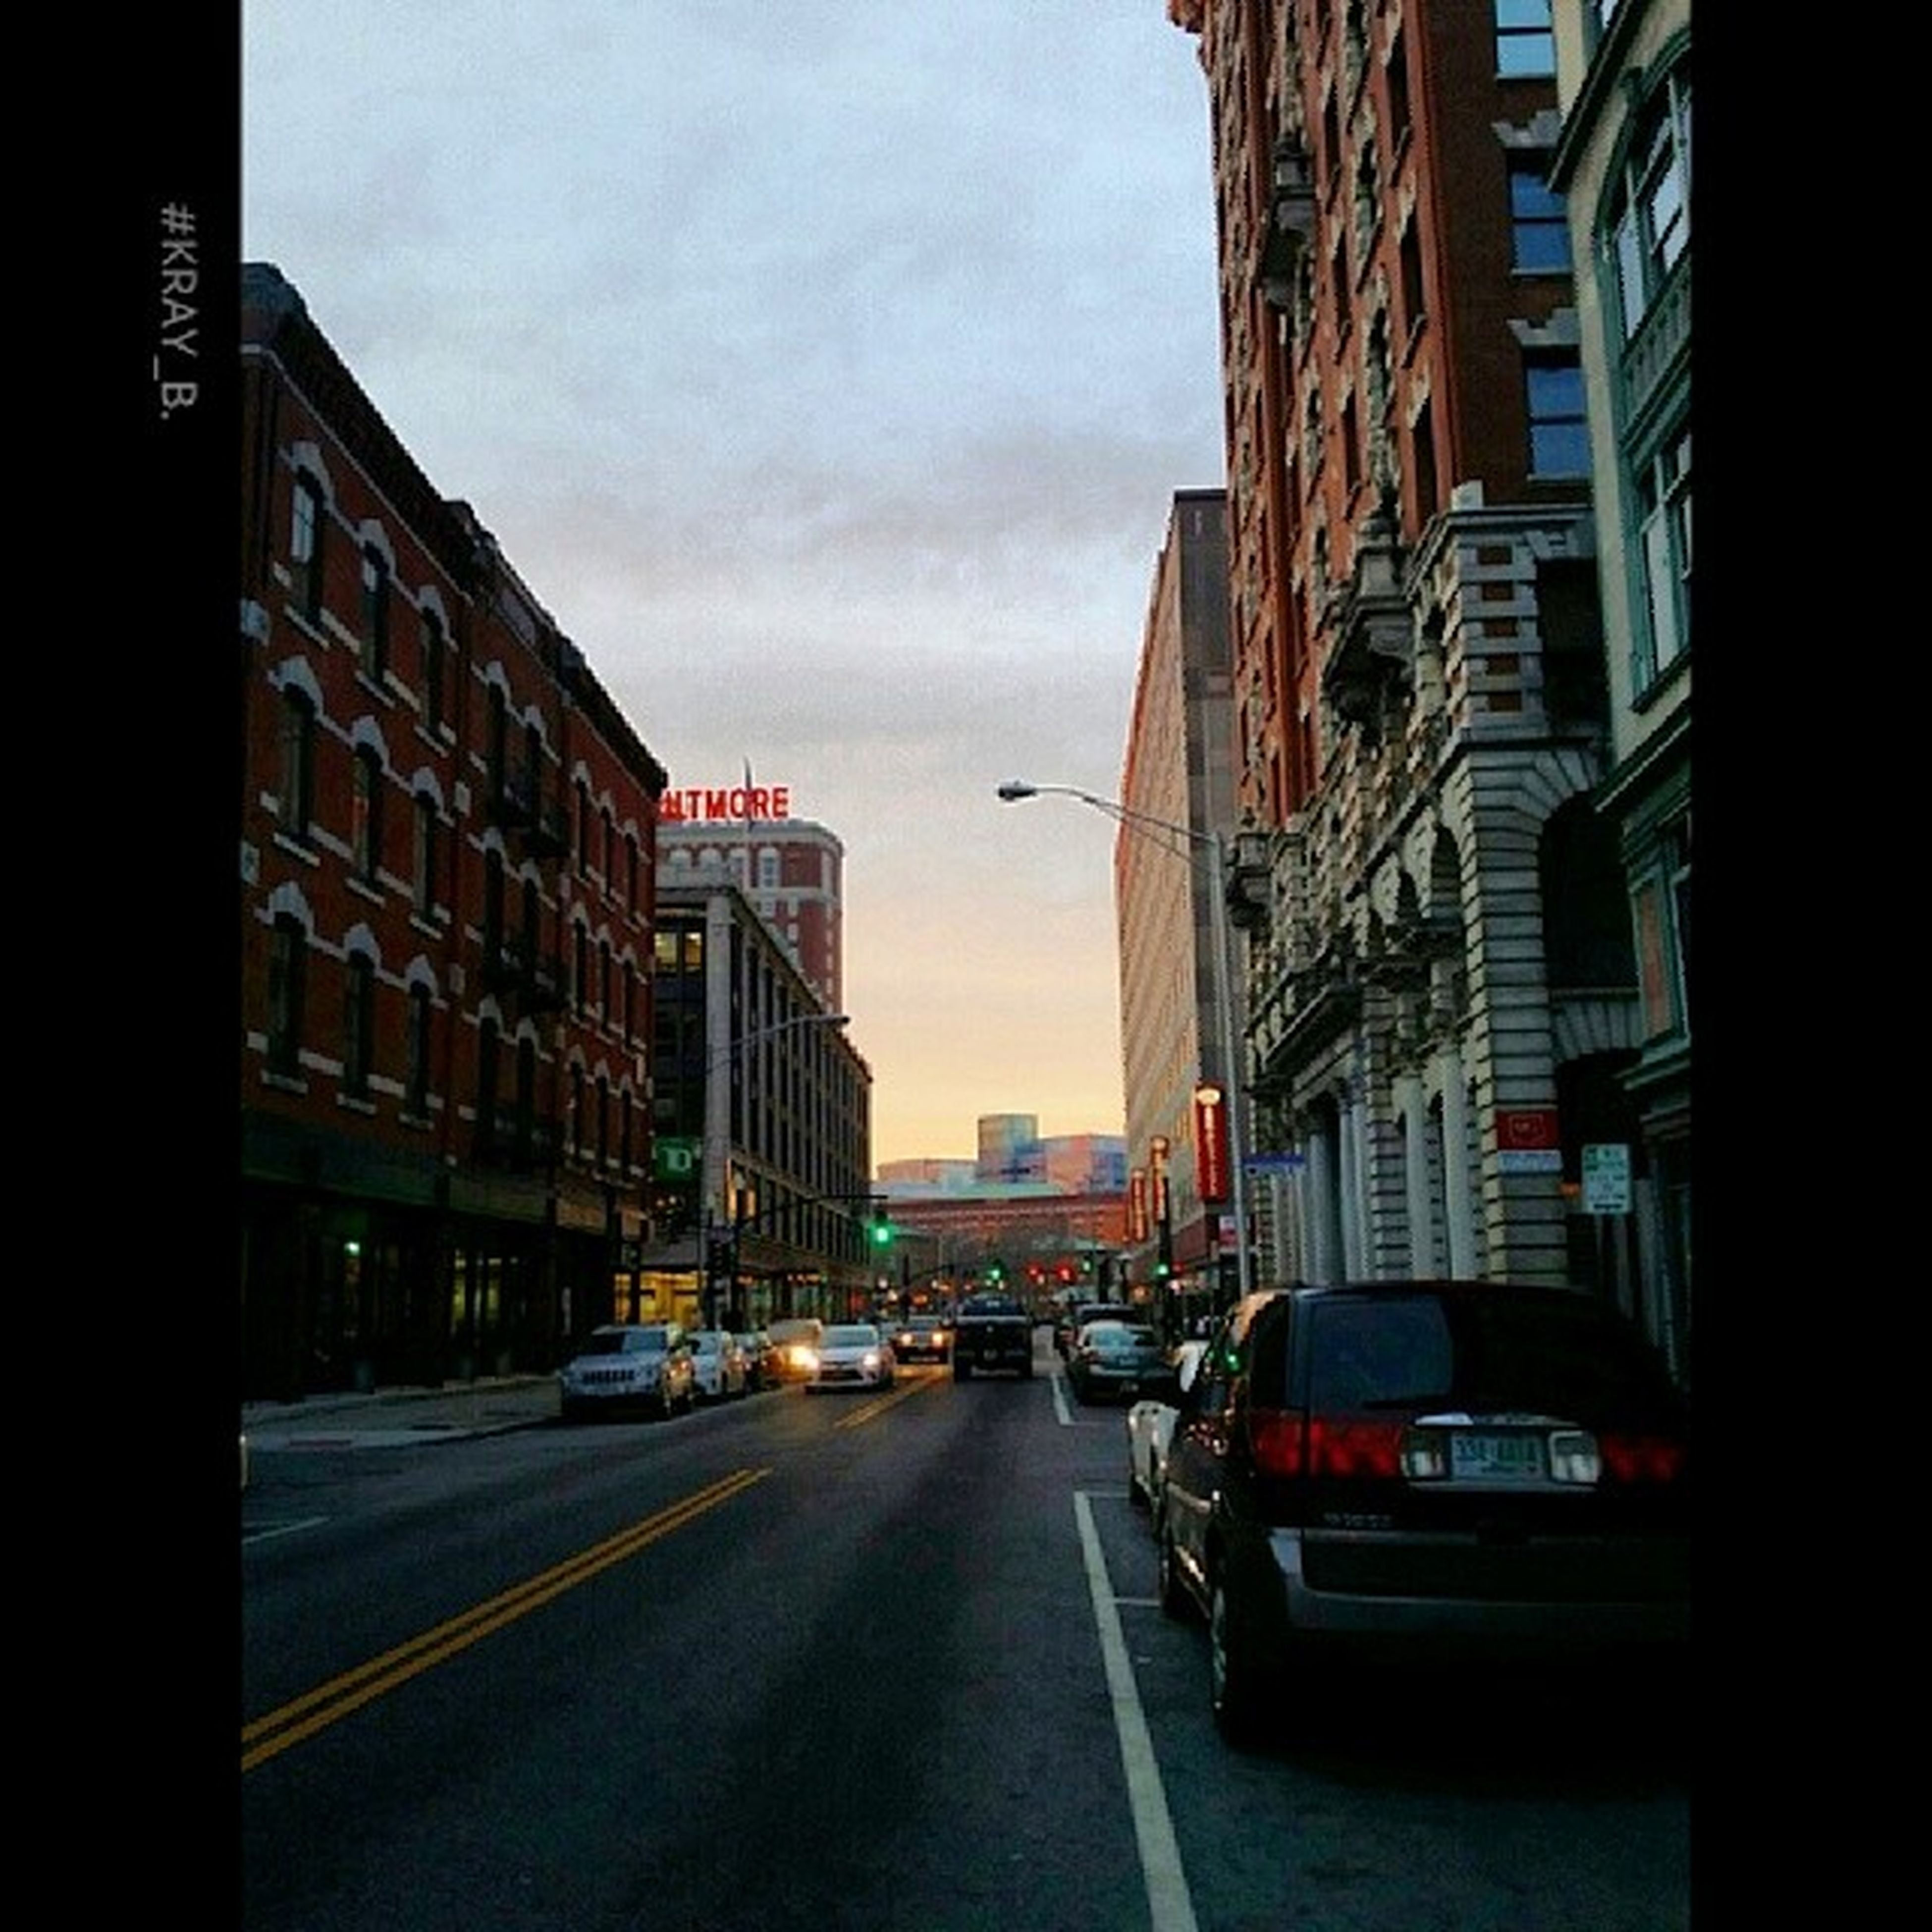 building exterior, architecture, transportation, car, built structure, land vehicle, city, mode of transport, street, road, sky, the way forward, building, city life, city street, diminishing perspective, incidental people, road marking, traffic, residential building